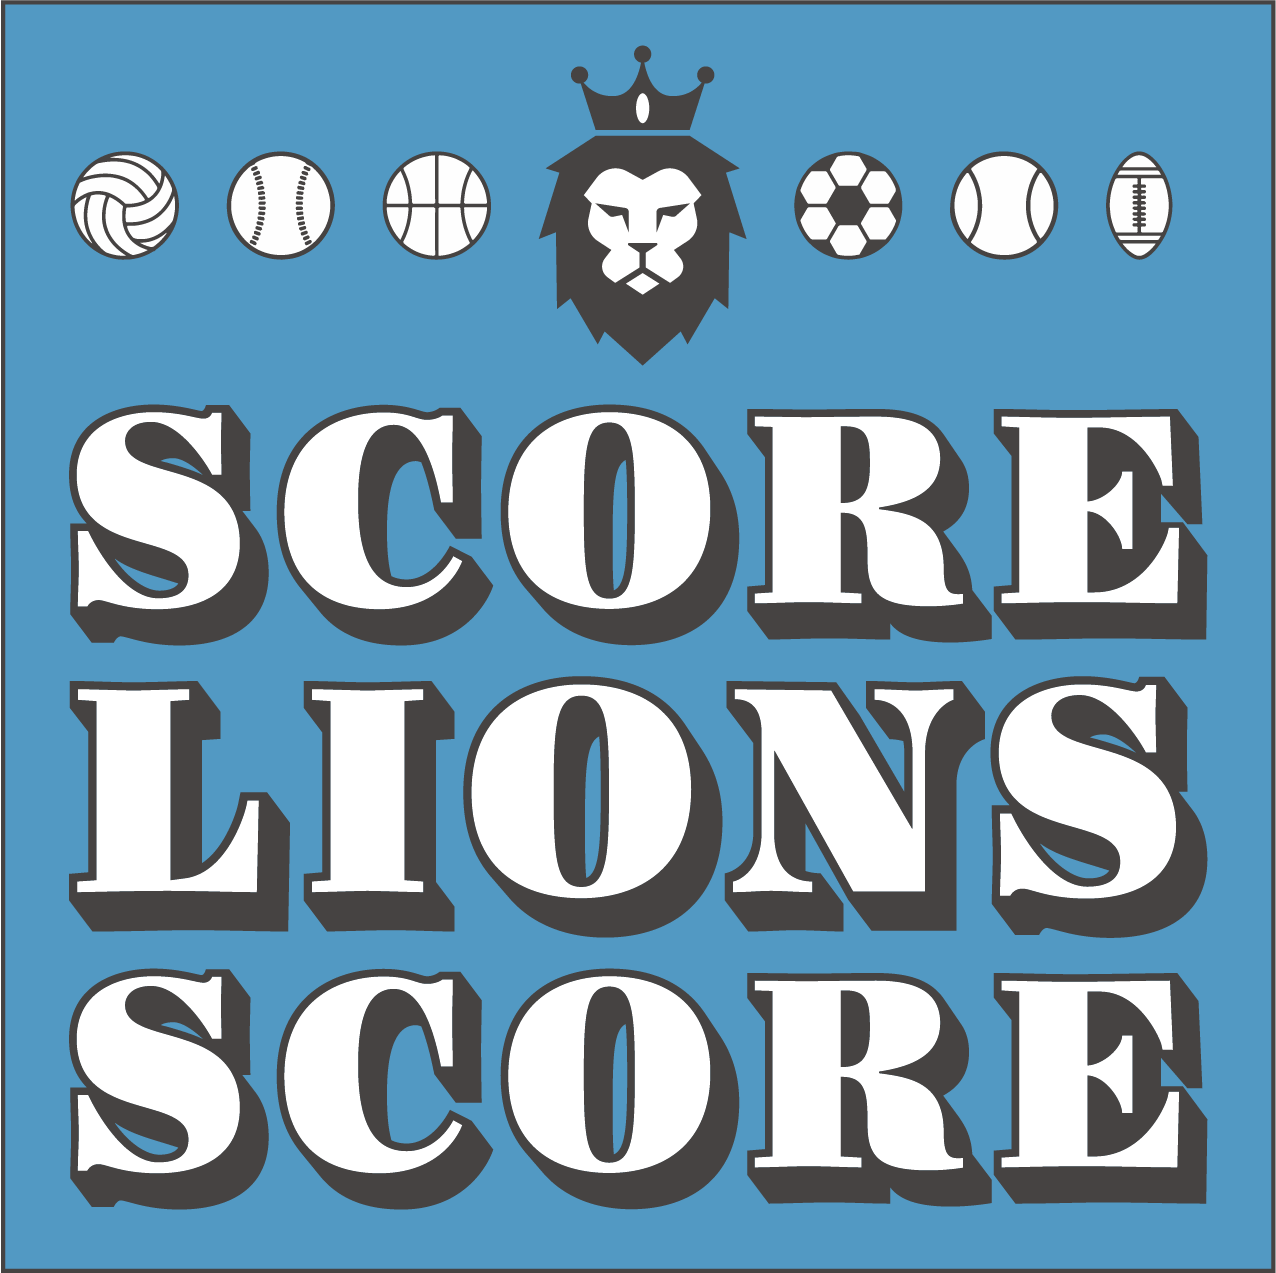 Score Lions Score - A biweekly update on all the biggest news in Columbia Athletics, Score Lions Score is your new one-stop-shop for all things Lions. Hosts Ethan DeLehman and Zach Miller will dive deep into game analysis, breaking news, and coach and player interviews. A show designed to give listeners all they need to know about CU Athletics in a half-hour window every other week. Tune into every podcast and you'll be as up-to-date as we are.Content coming soon!